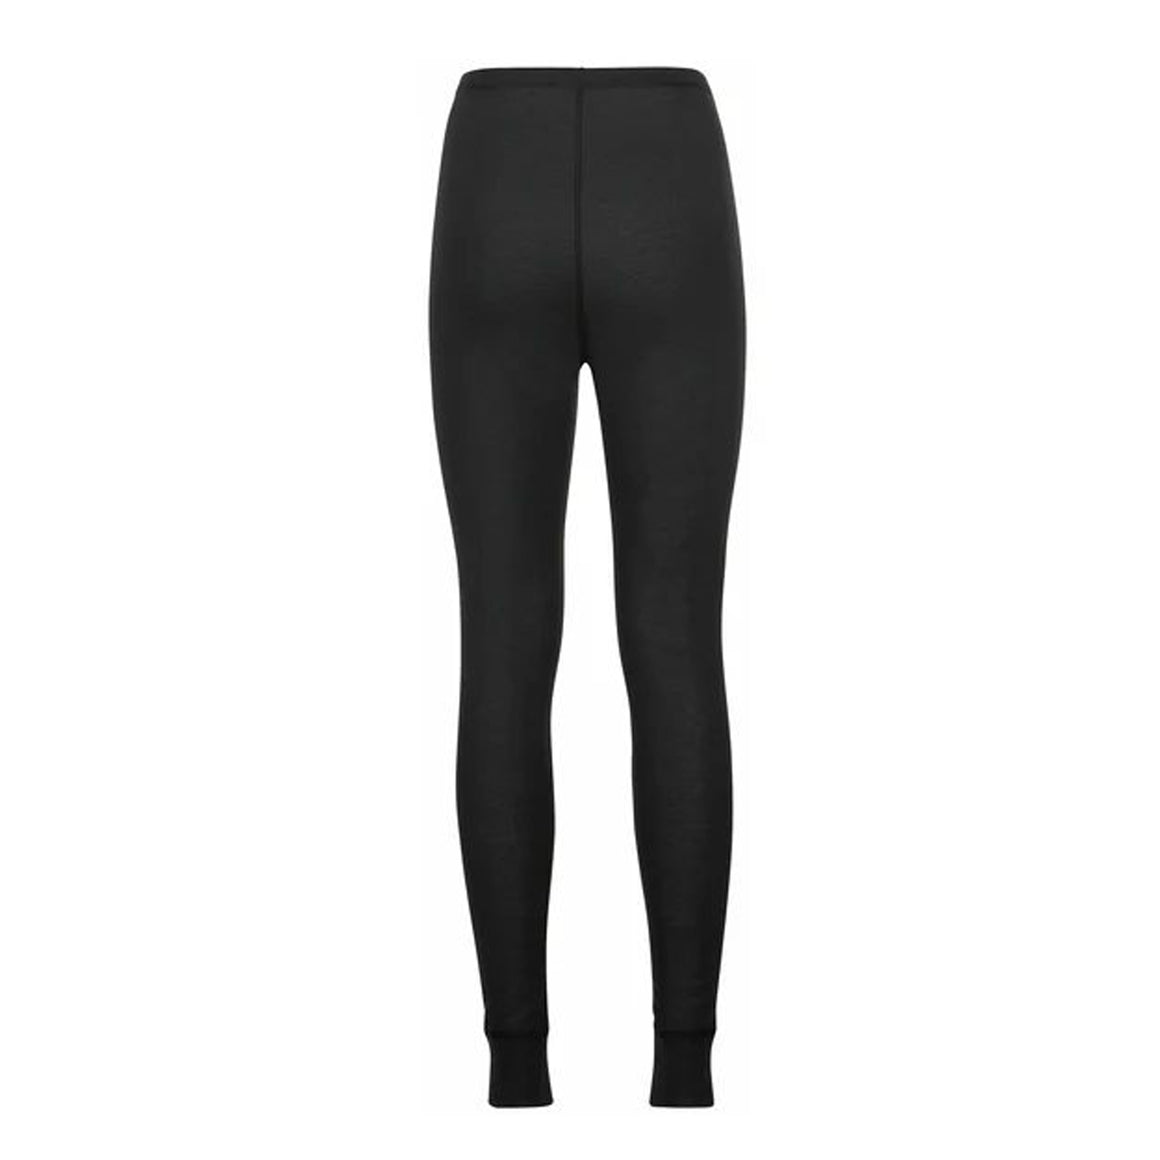 Active Warm Eco Long Bottoms for Women in Black